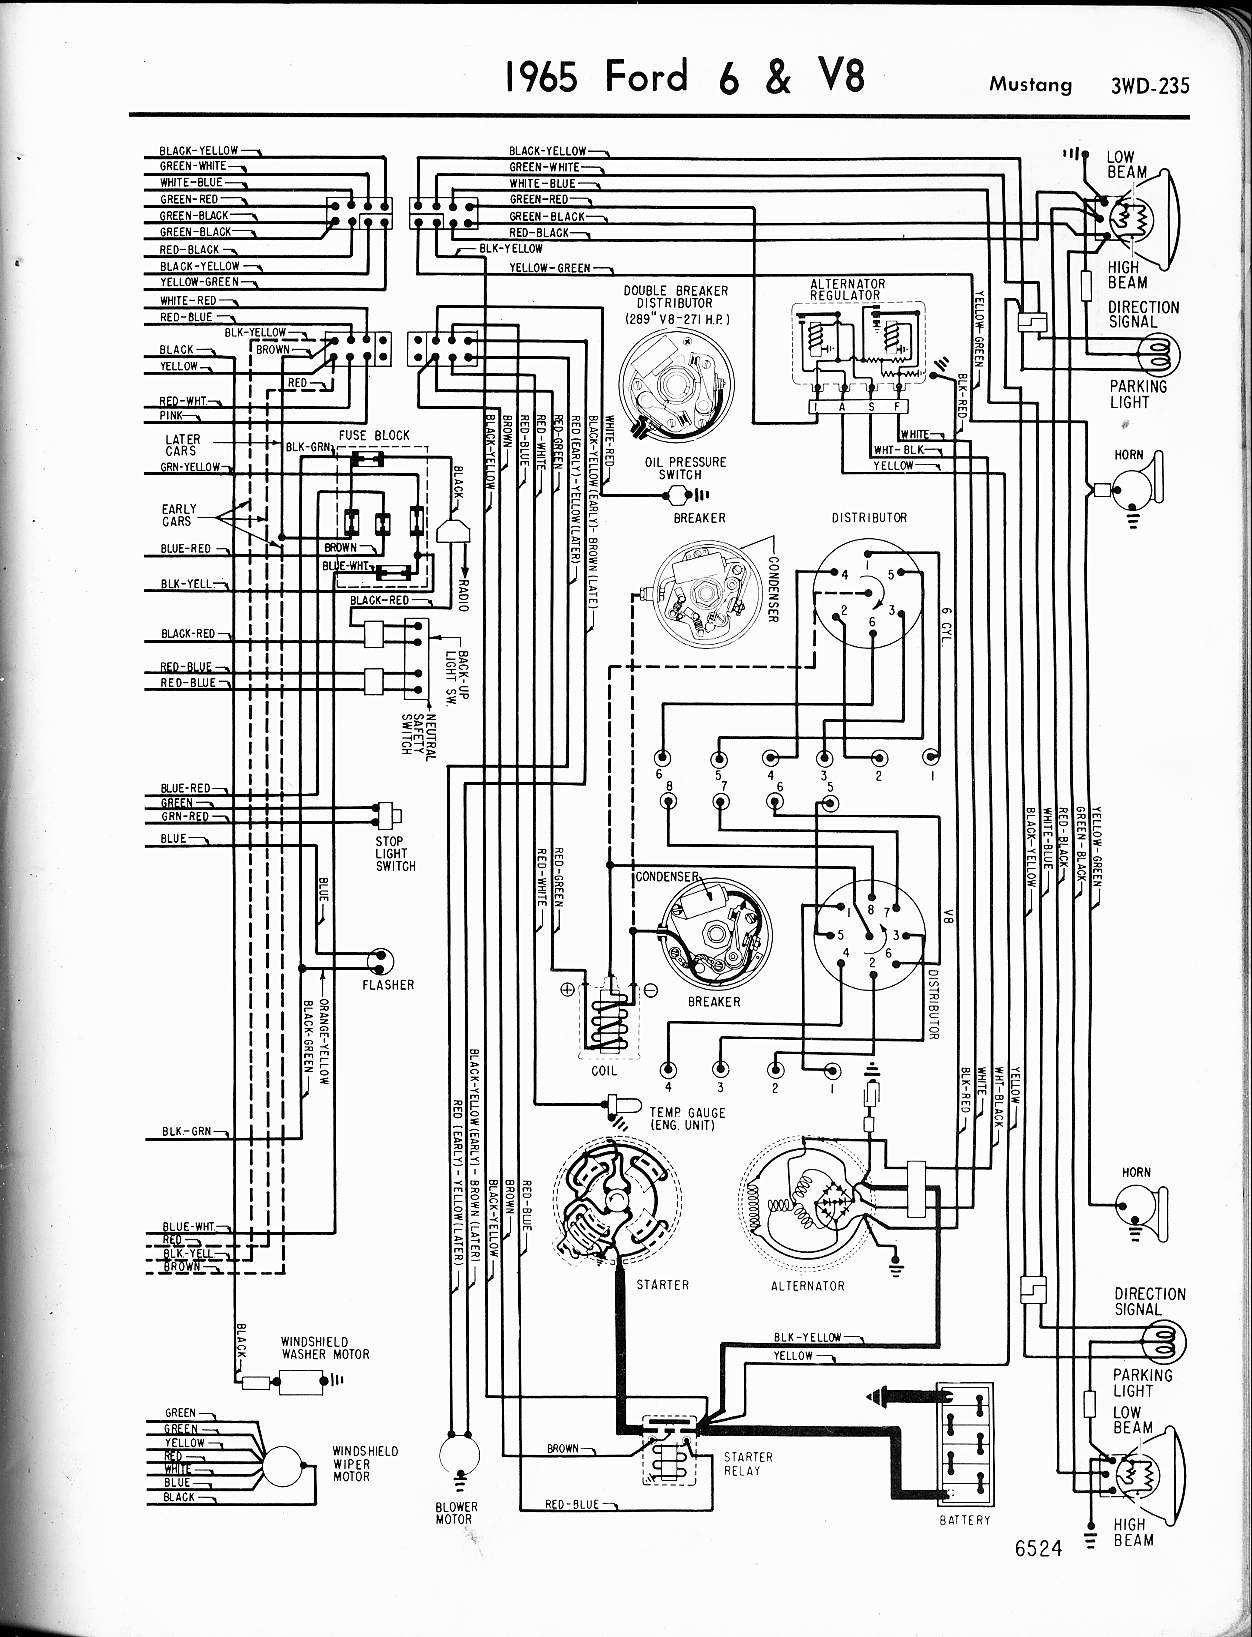 Ford Diagrams on 95 f150 injector harness diagram, ford harnesses diagram, 5.0 efi harness color diagram, ford racing mustang, 85 ranger ignition wiring diagram, ford 5 8 fuel injection diagram, 1995 f150 fuel injection diagram, 1989 ford f 250 5.0l efi engine diagram, ford efi sensor diagram, 93 mustang fuel pump wiring diagram, ford 2.3l engine diagram, 1986 thunderbird alternator wire diagram, ford turbo wiring, ford 2.3 wiring-diagram,